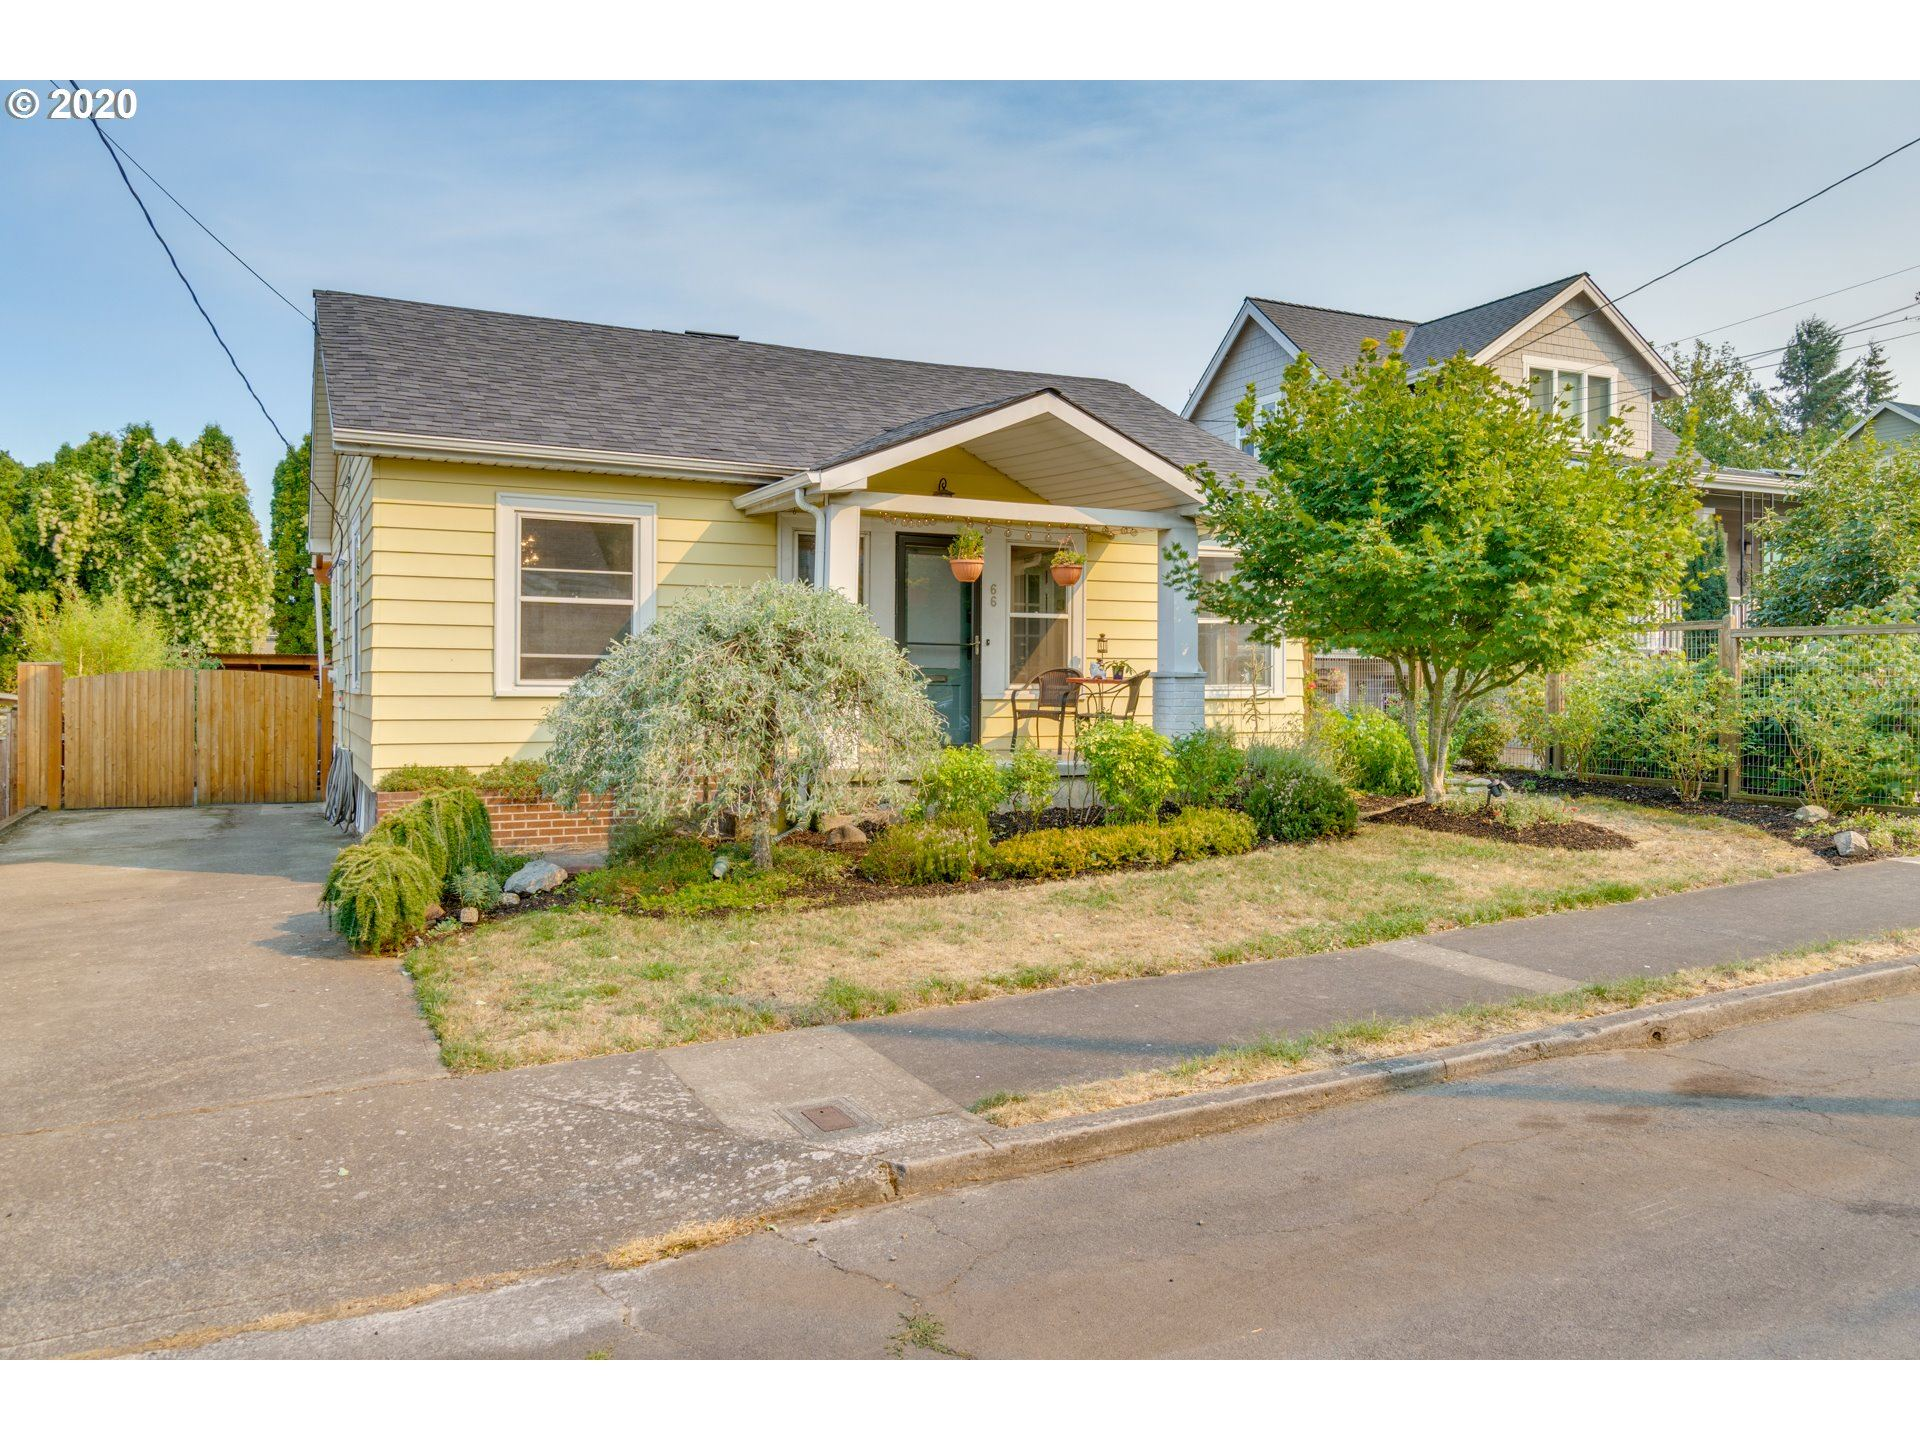 66 SE 72ND AVE, Portland, OR 97215 - MLS#: 20409181